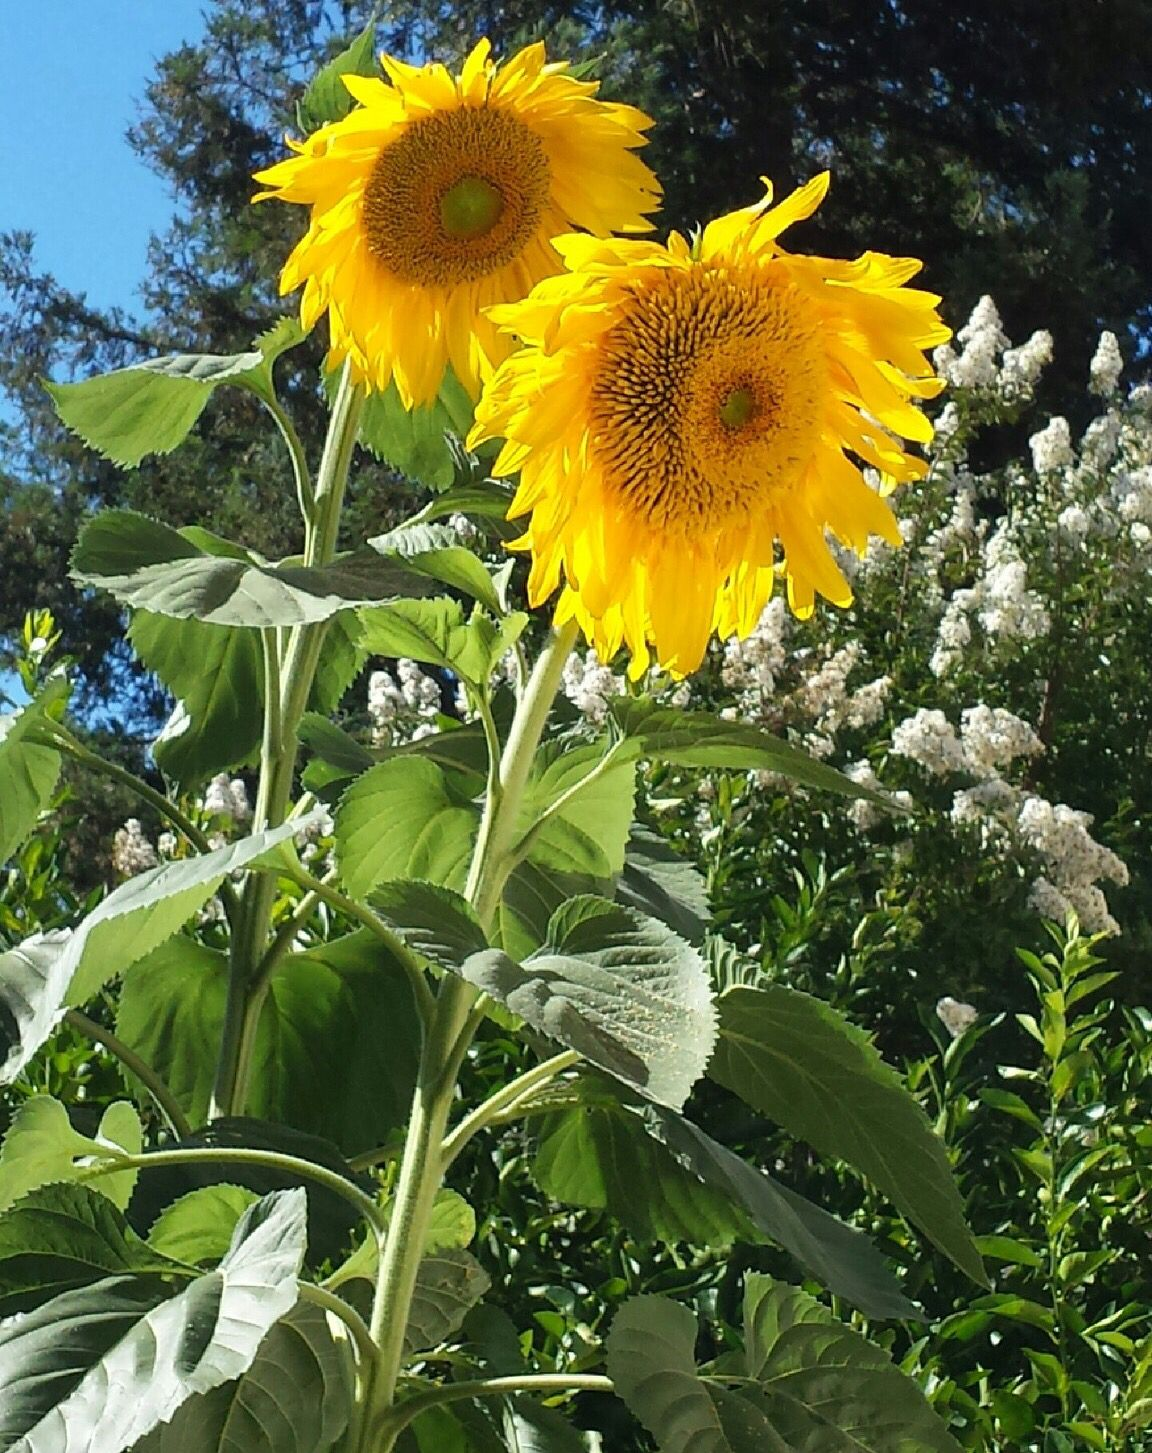 Toccara Found Beauty In Her Own Back Yard Beautiful Sunflowers